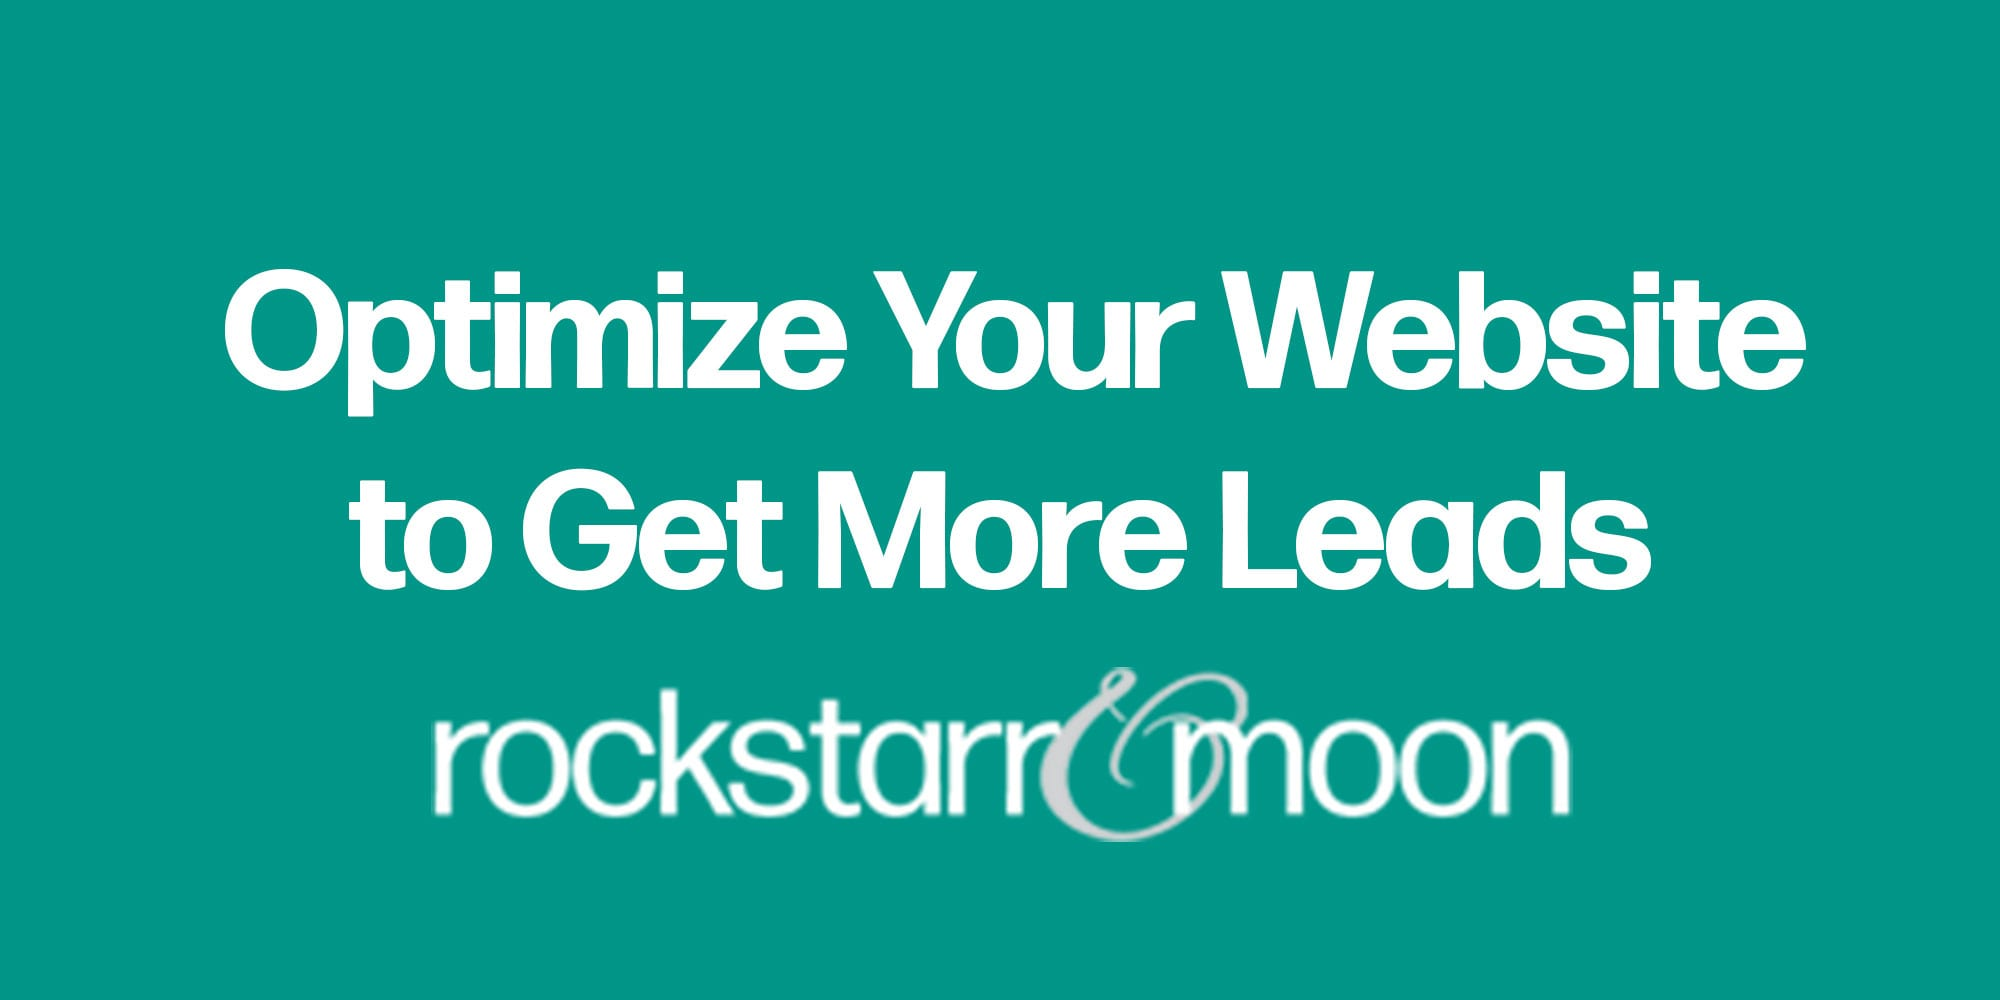 5 Simple Ways to Optimize Your Website to Get More Leads